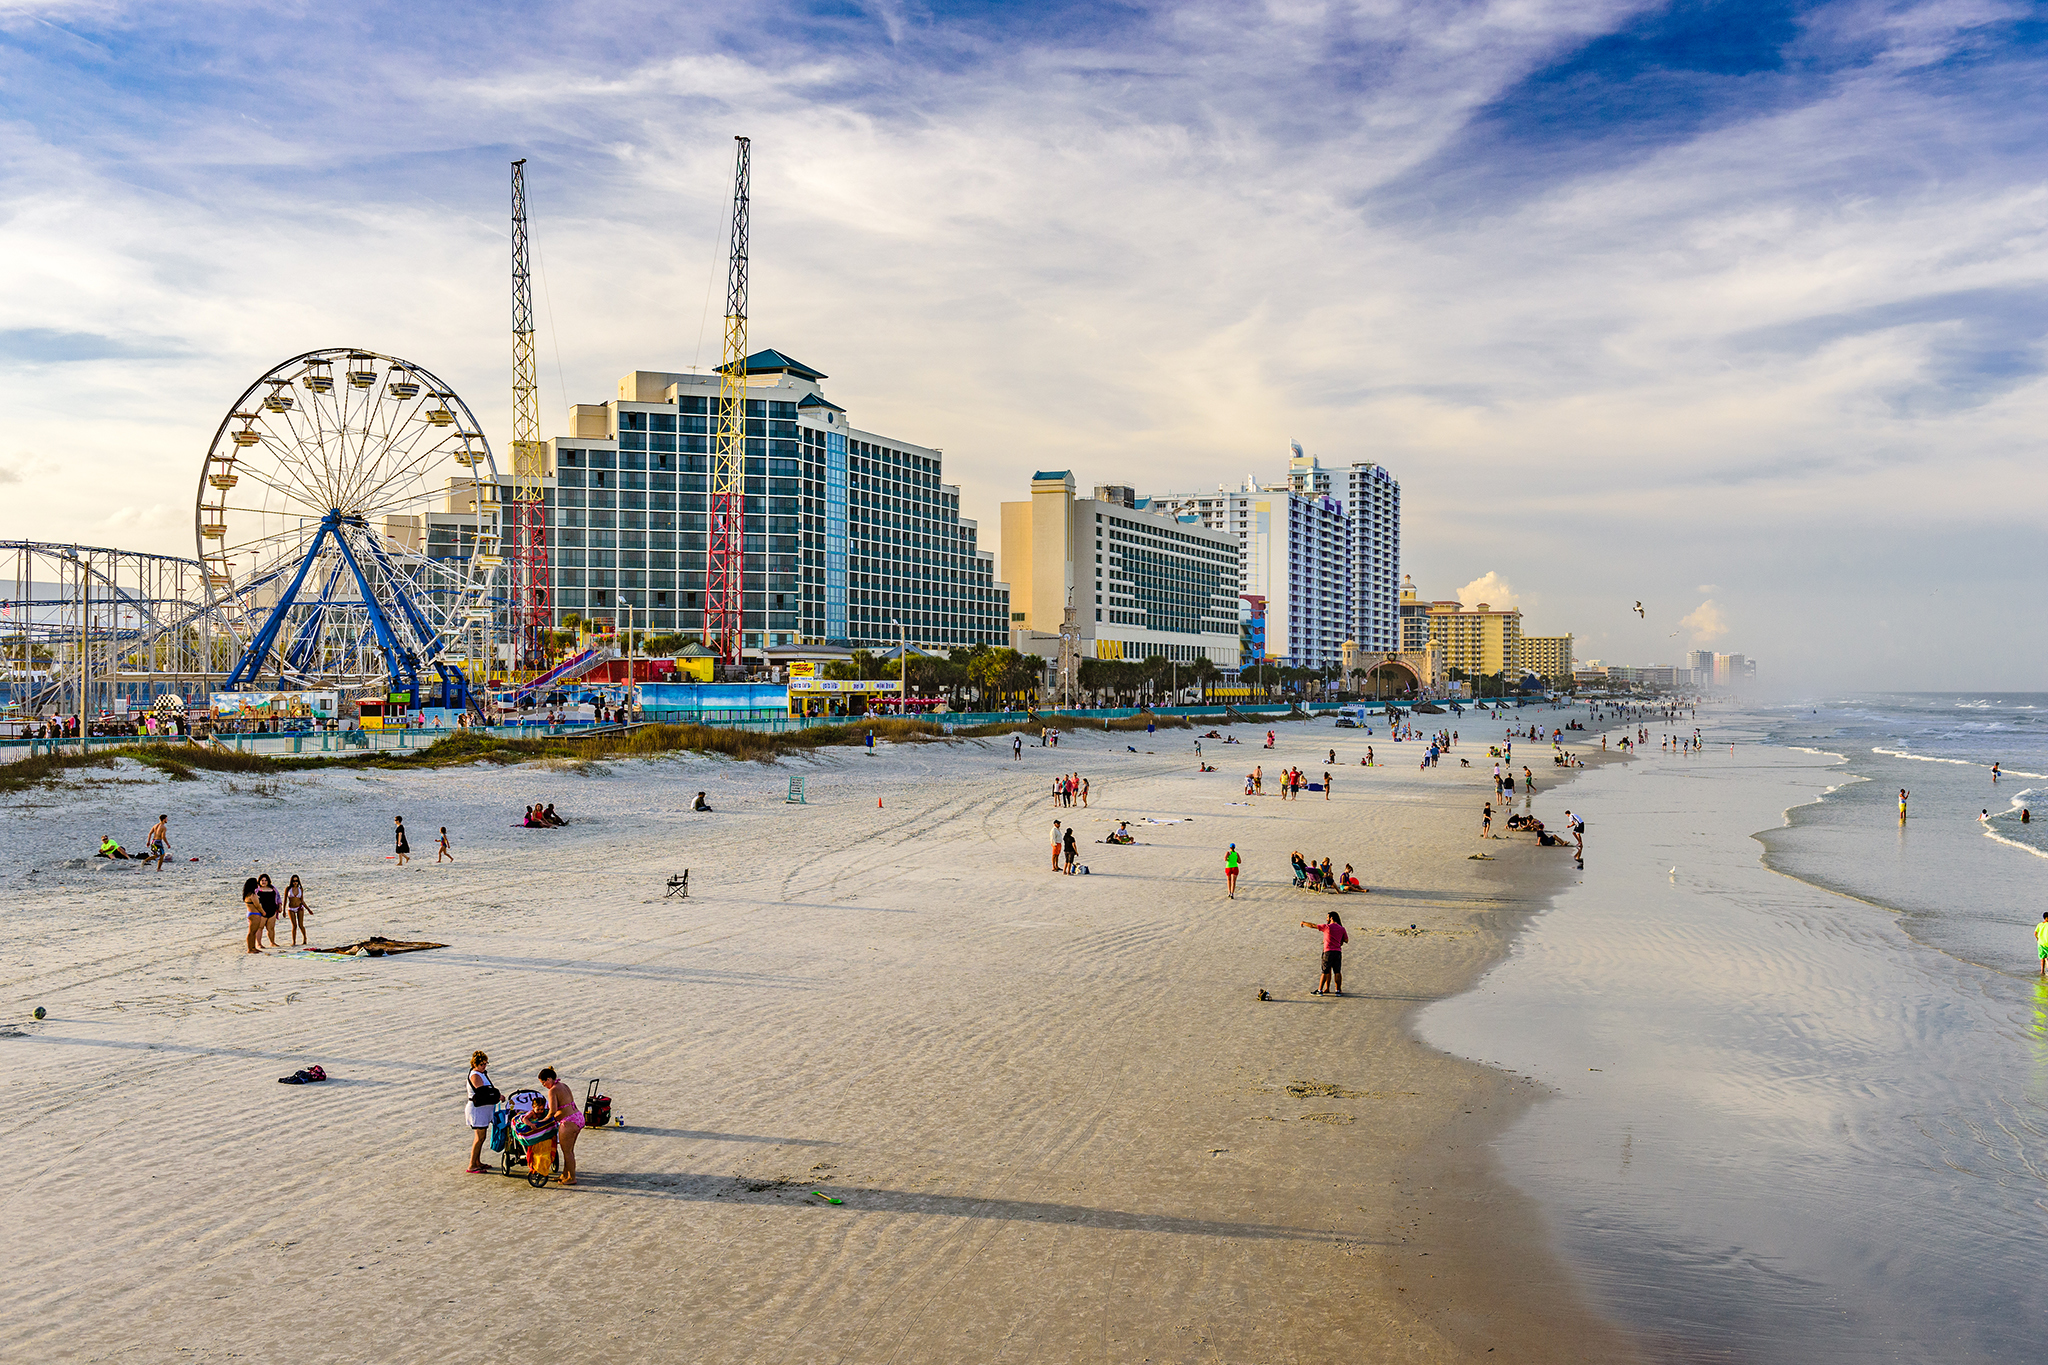 Daytona Beach - Things To Do In Orlando Besides Theme Parks